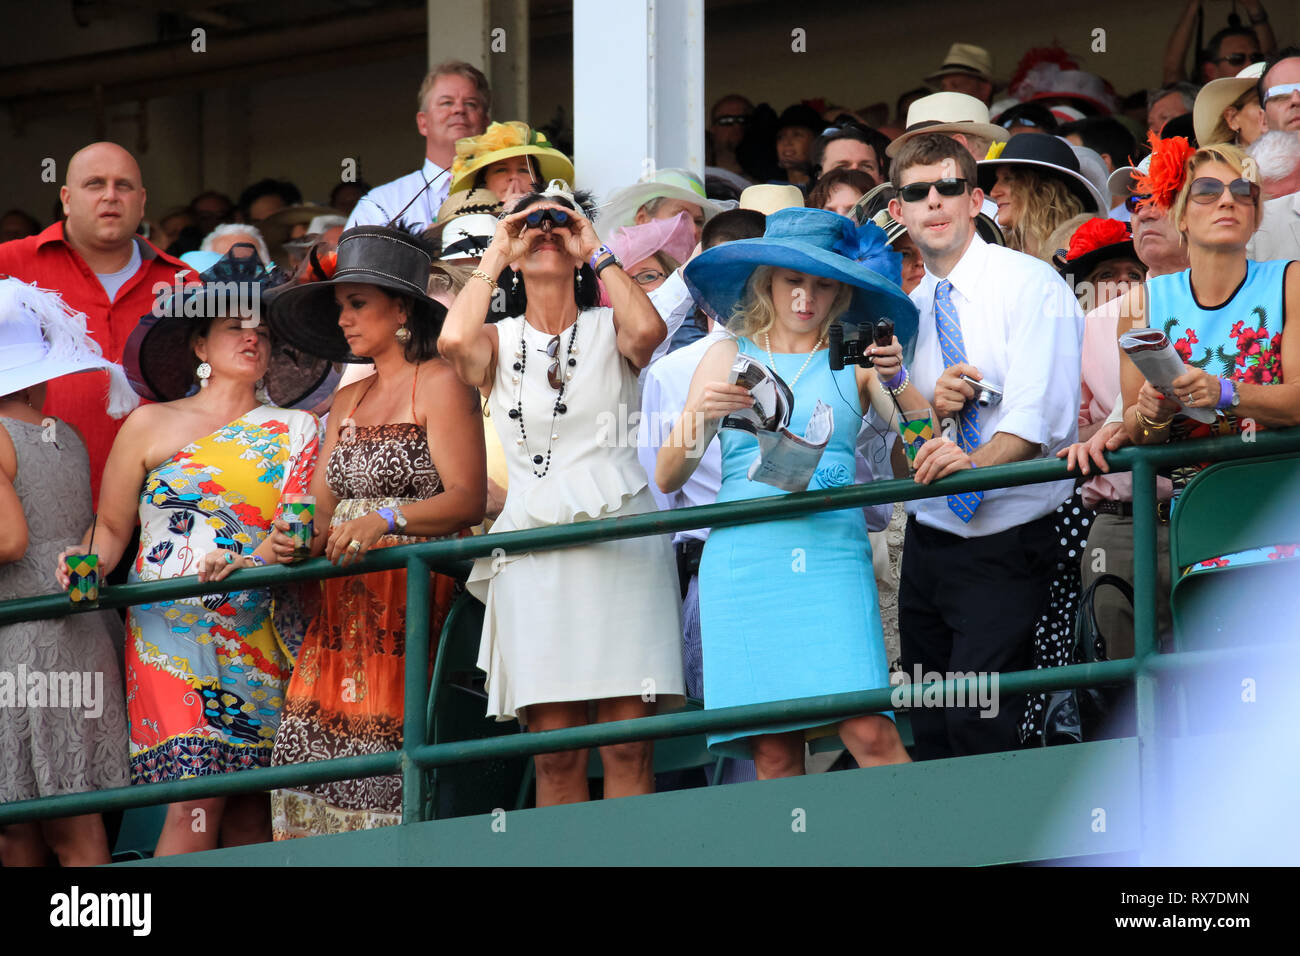 Kentucky Derby Horse Race at Louisville, USA - Attendants of the Derby dressed with fancy clothes observe the horse races from the stands - Stock Image